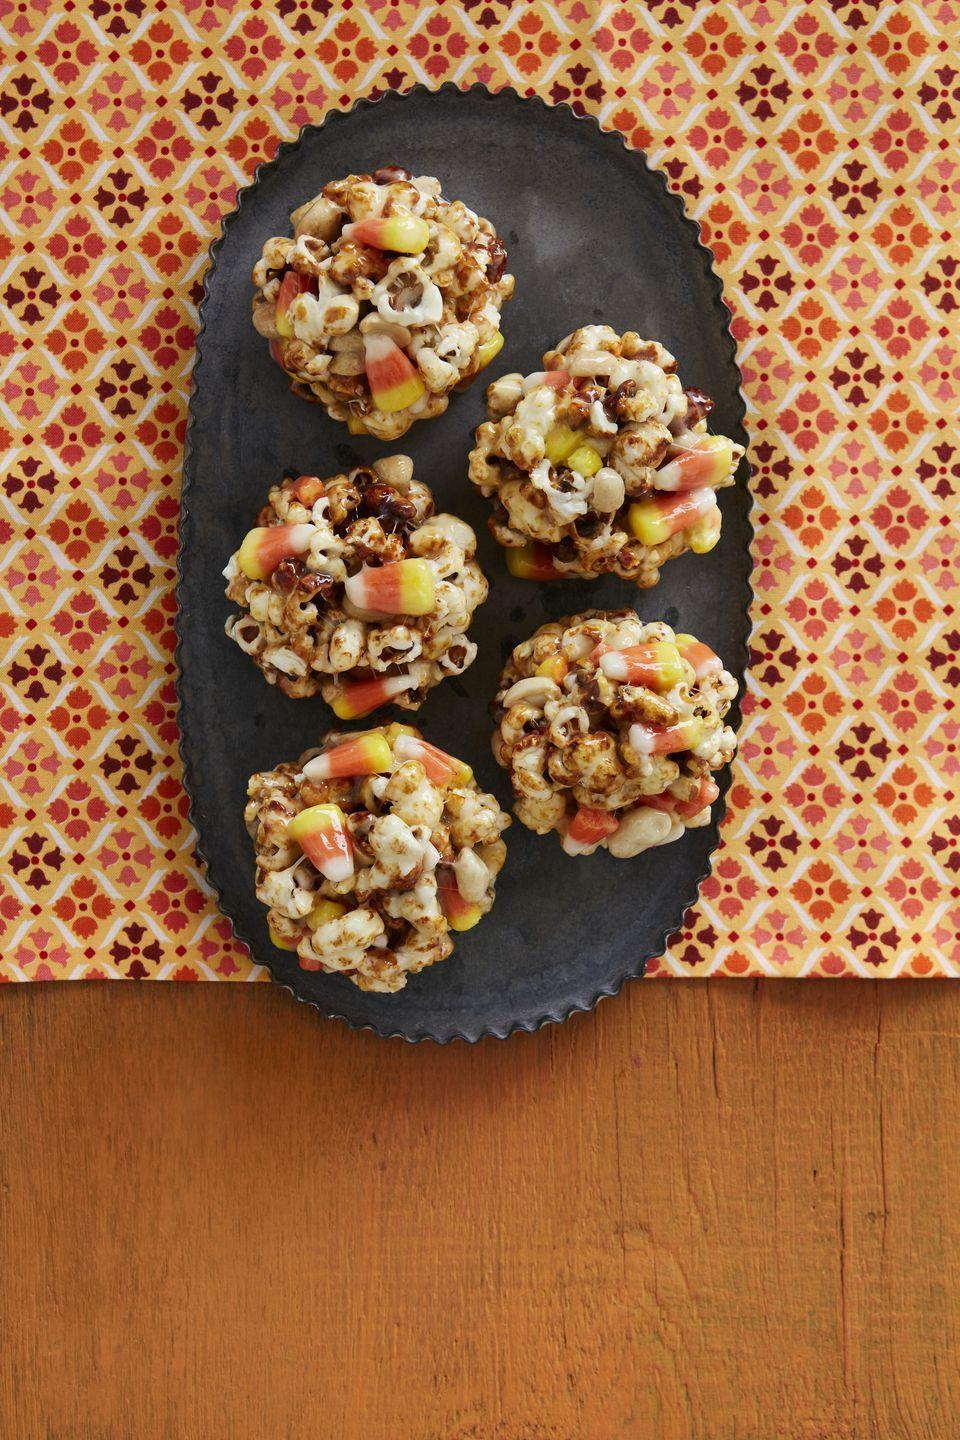 """<p>The combination of candy corn and popcorn would already be wonderful enough. But here, it's made even more marvelous with the addition of salted, roasted peanuts and mini marshmallows.</p><p><strong><a href=""""https://www.thepioneerwoman.com/food-cooking/recipes/a34029904/candy-corn-popcorn-balls-recipe/"""" rel=""""nofollow noopener"""" target=""""_blank"""" data-ylk=""""slk:Get the recipe."""" class=""""link rapid-noclick-resp"""">Get the recipe.</a></strong></p><p><a class=""""link rapid-noclick-resp"""" href=""""https://go.redirectingat.com?id=74968X1596630&url=https%3A%2F%2Fwww.walmart.com%2Fsearch%2F%3Fquery%3Dthe%2Bpioneer%2Bwoman%2Bserving%2Bplatters&sref=https%3A%2F%2Fwww.thepioneerwoman.com%2Ffood-cooking%2Fmeals-menus%2Fg32110899%2Fbest-halloween-desserts%2F"""" rel=""""nofollow noopener"""" target=""""_blank"""" data-ylk=""""slk:SHOP SERVING PLATTERS"""">SHOP SERVING PLATTERS</a></p>"""